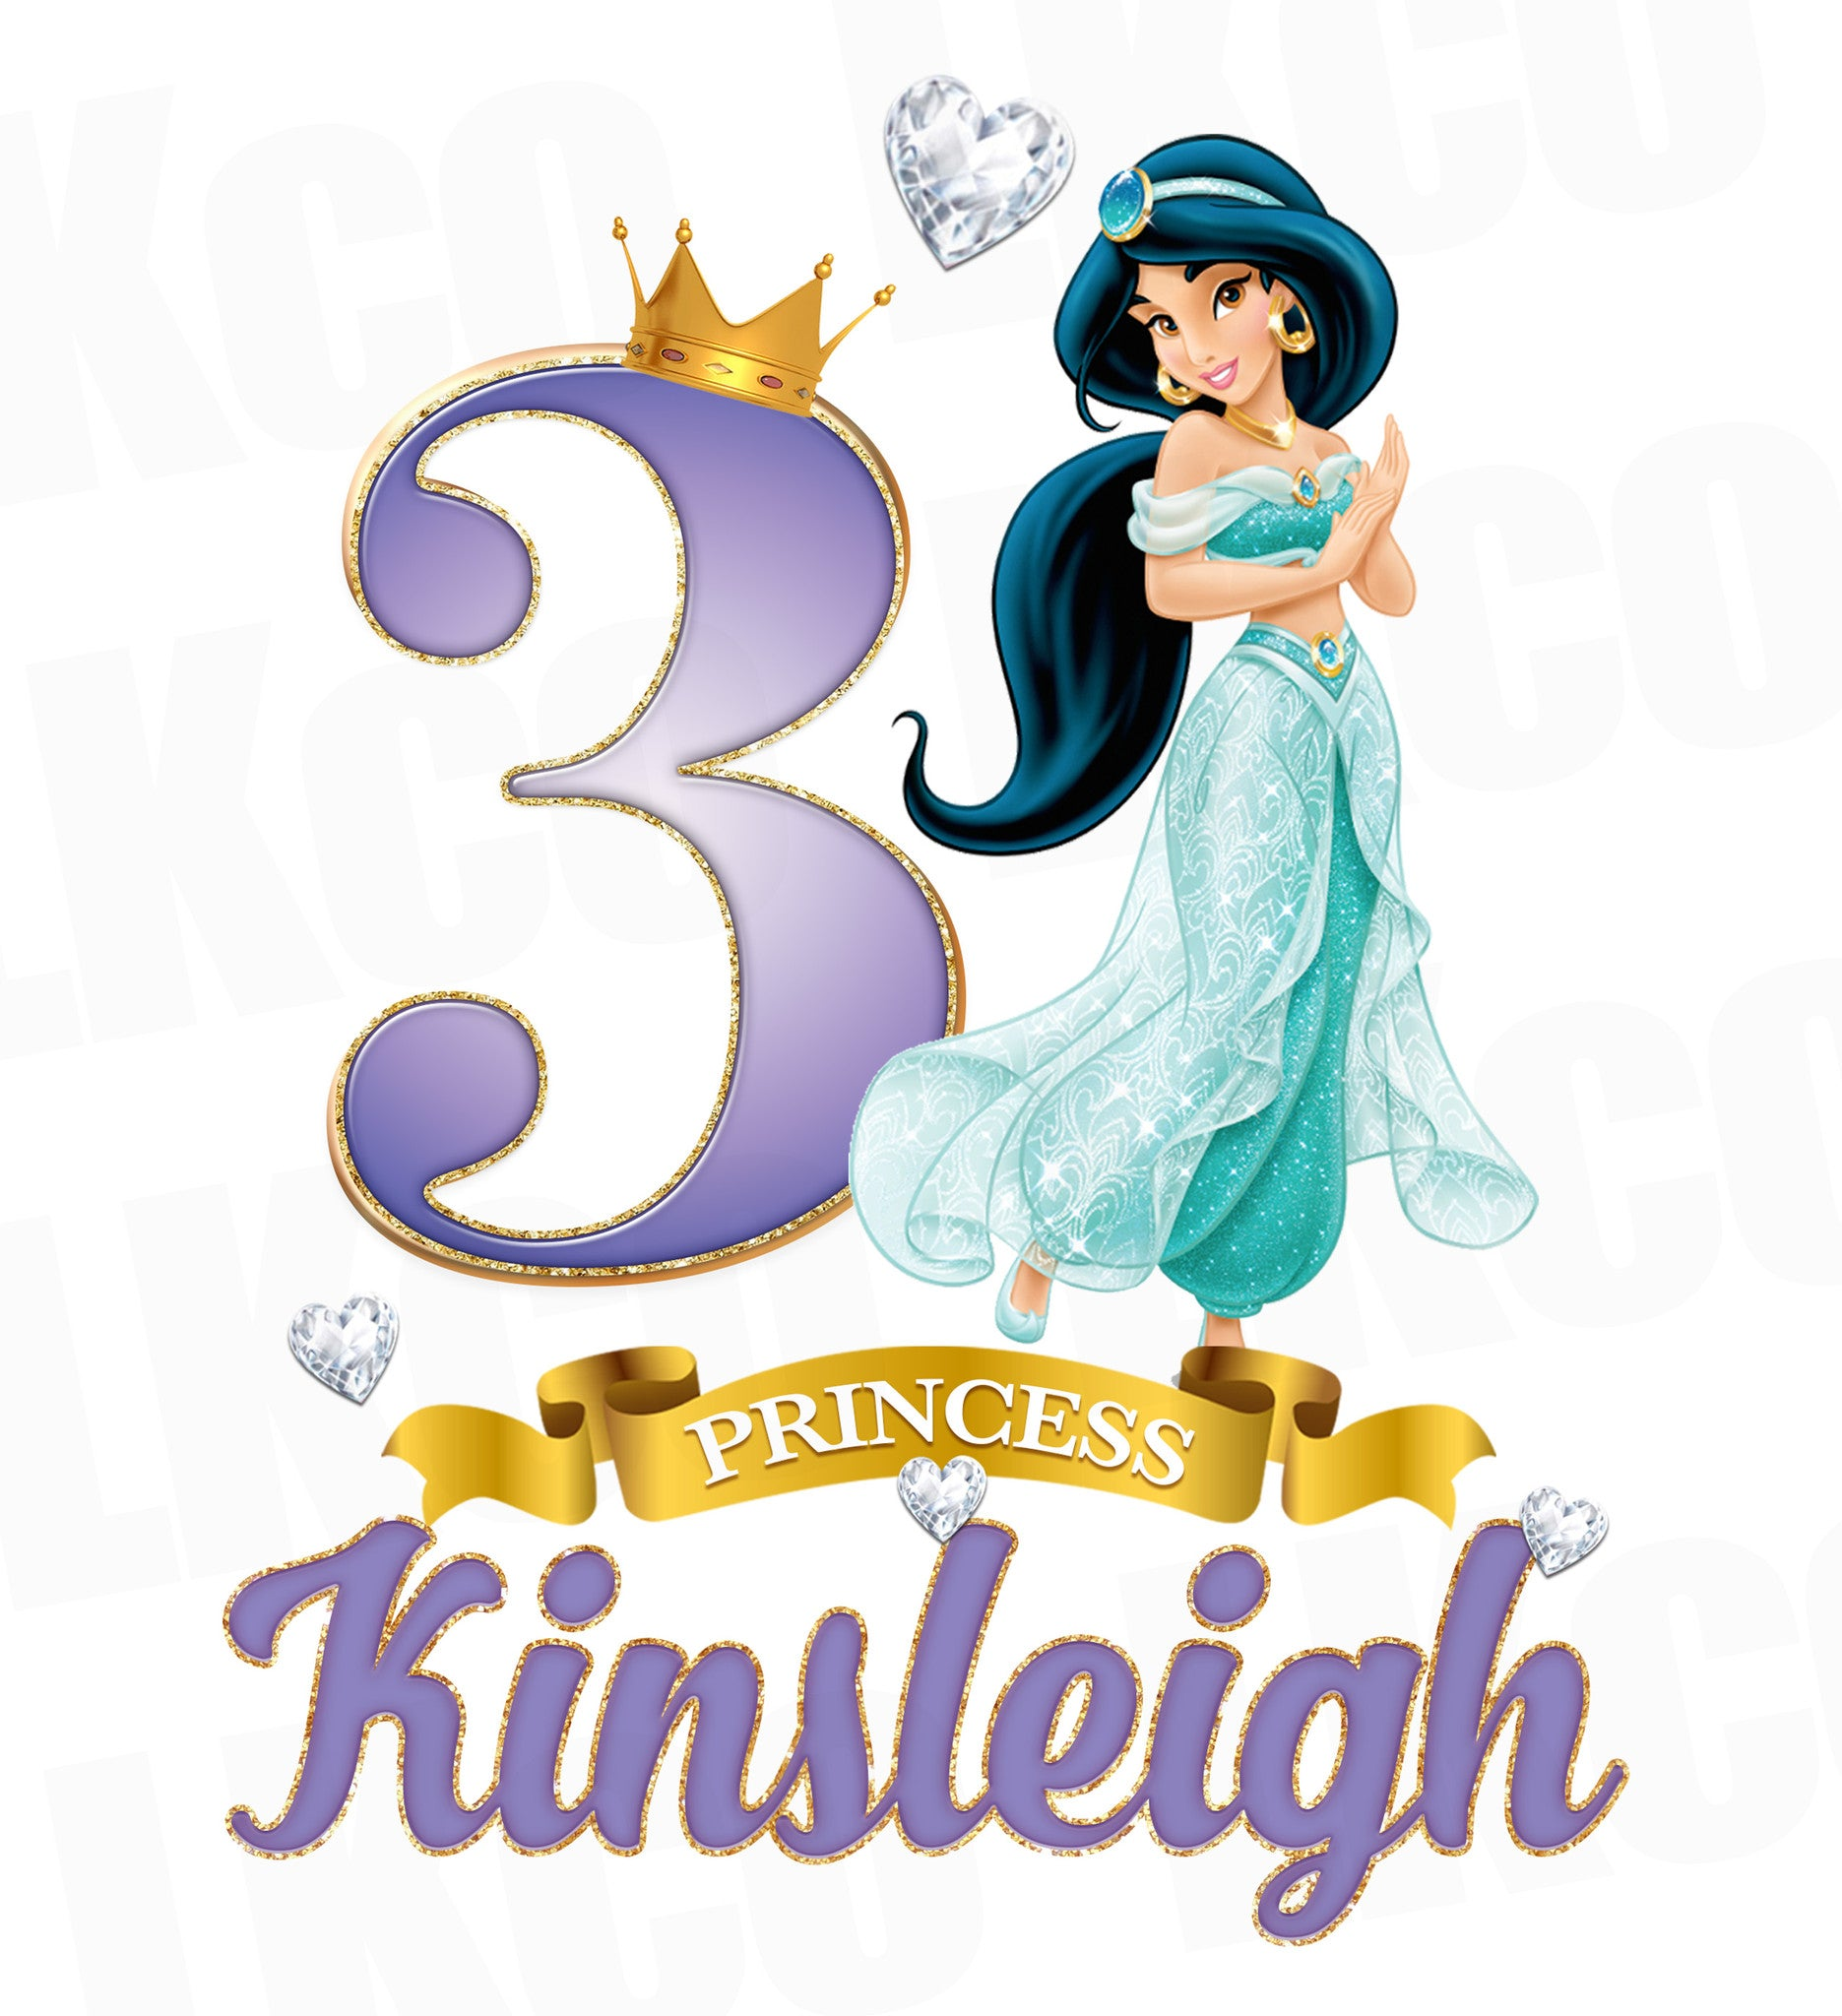 Princess Jasmine Iron On Transfer for Birthday Girl